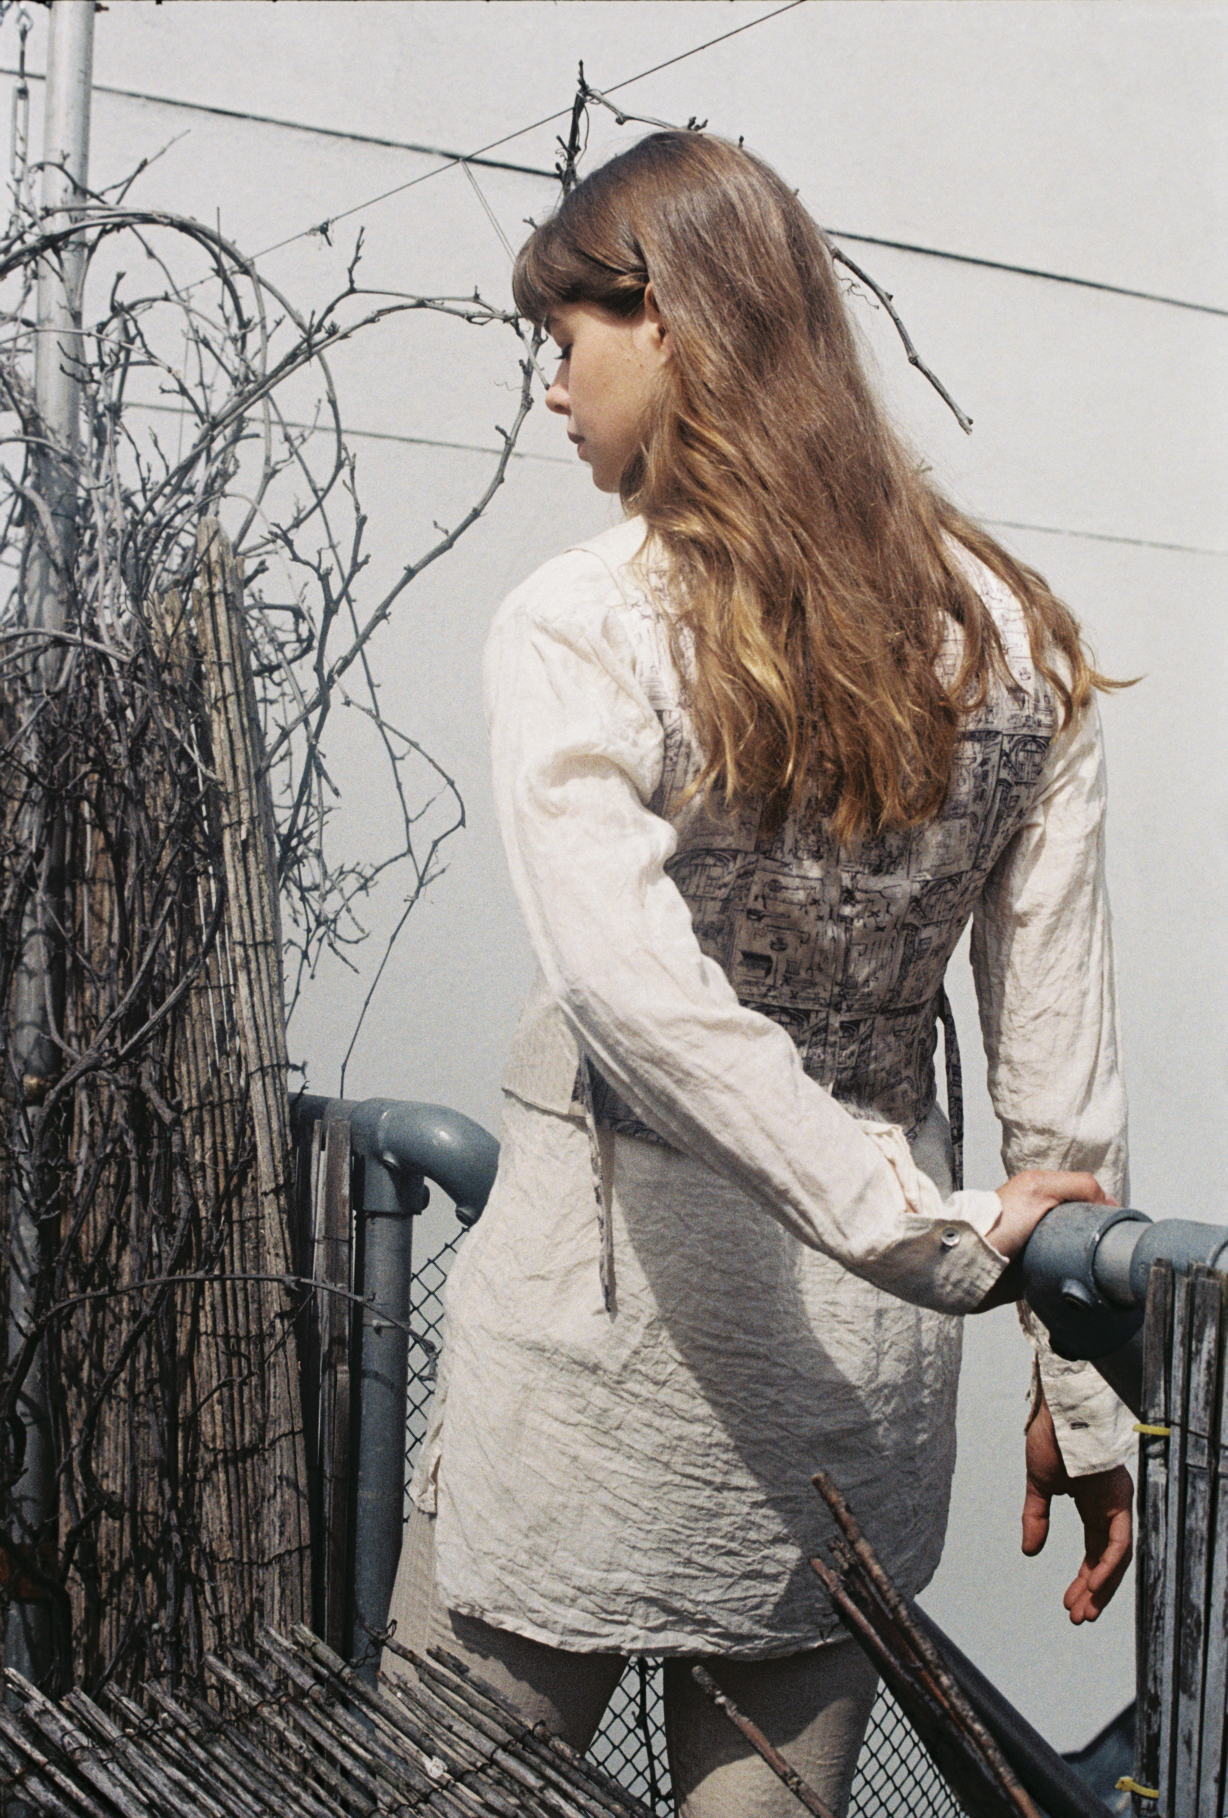 One hand-woven shirt and waistcoat by Geoffrey b. Small, photographed by Ryan Skelton, model Pauline de Bionay